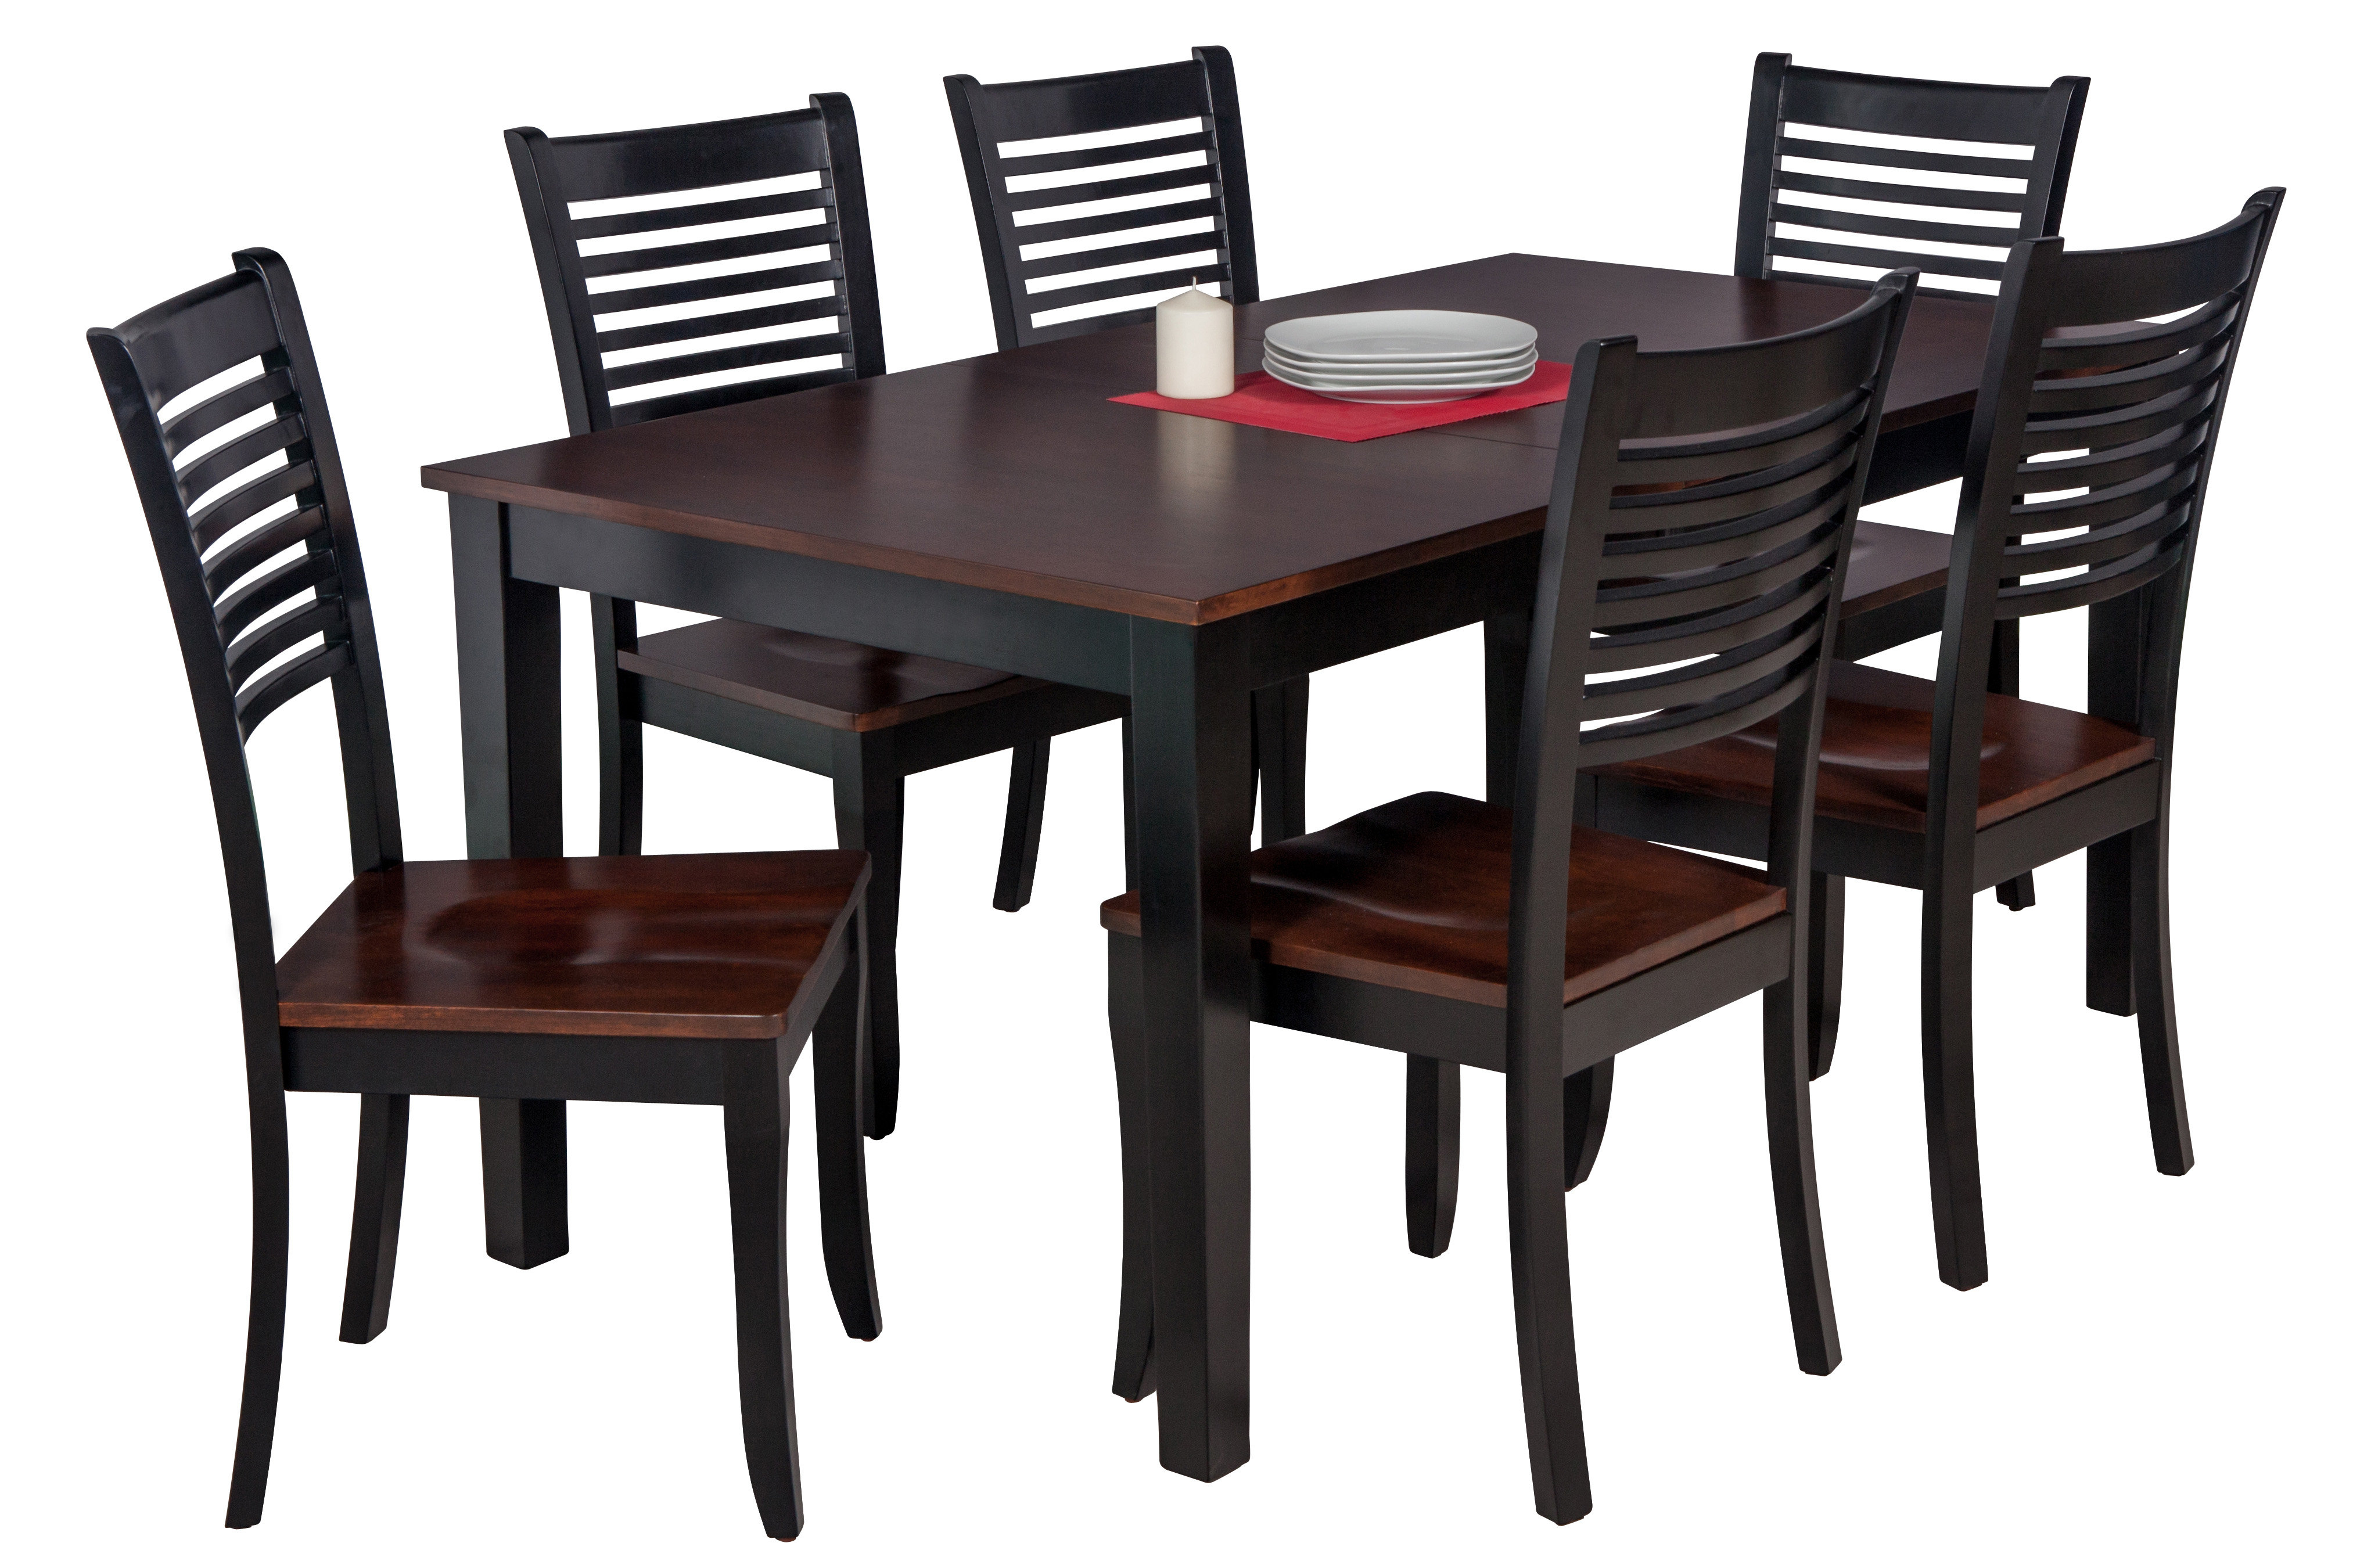 Downieville Lawson Dumont 7 Piece Solid Wood Dining Set Regarding Recent Hanska Wooden 5 Piece Counter Height Dining Table Sets (Set Of 5) (View 10 of 20)